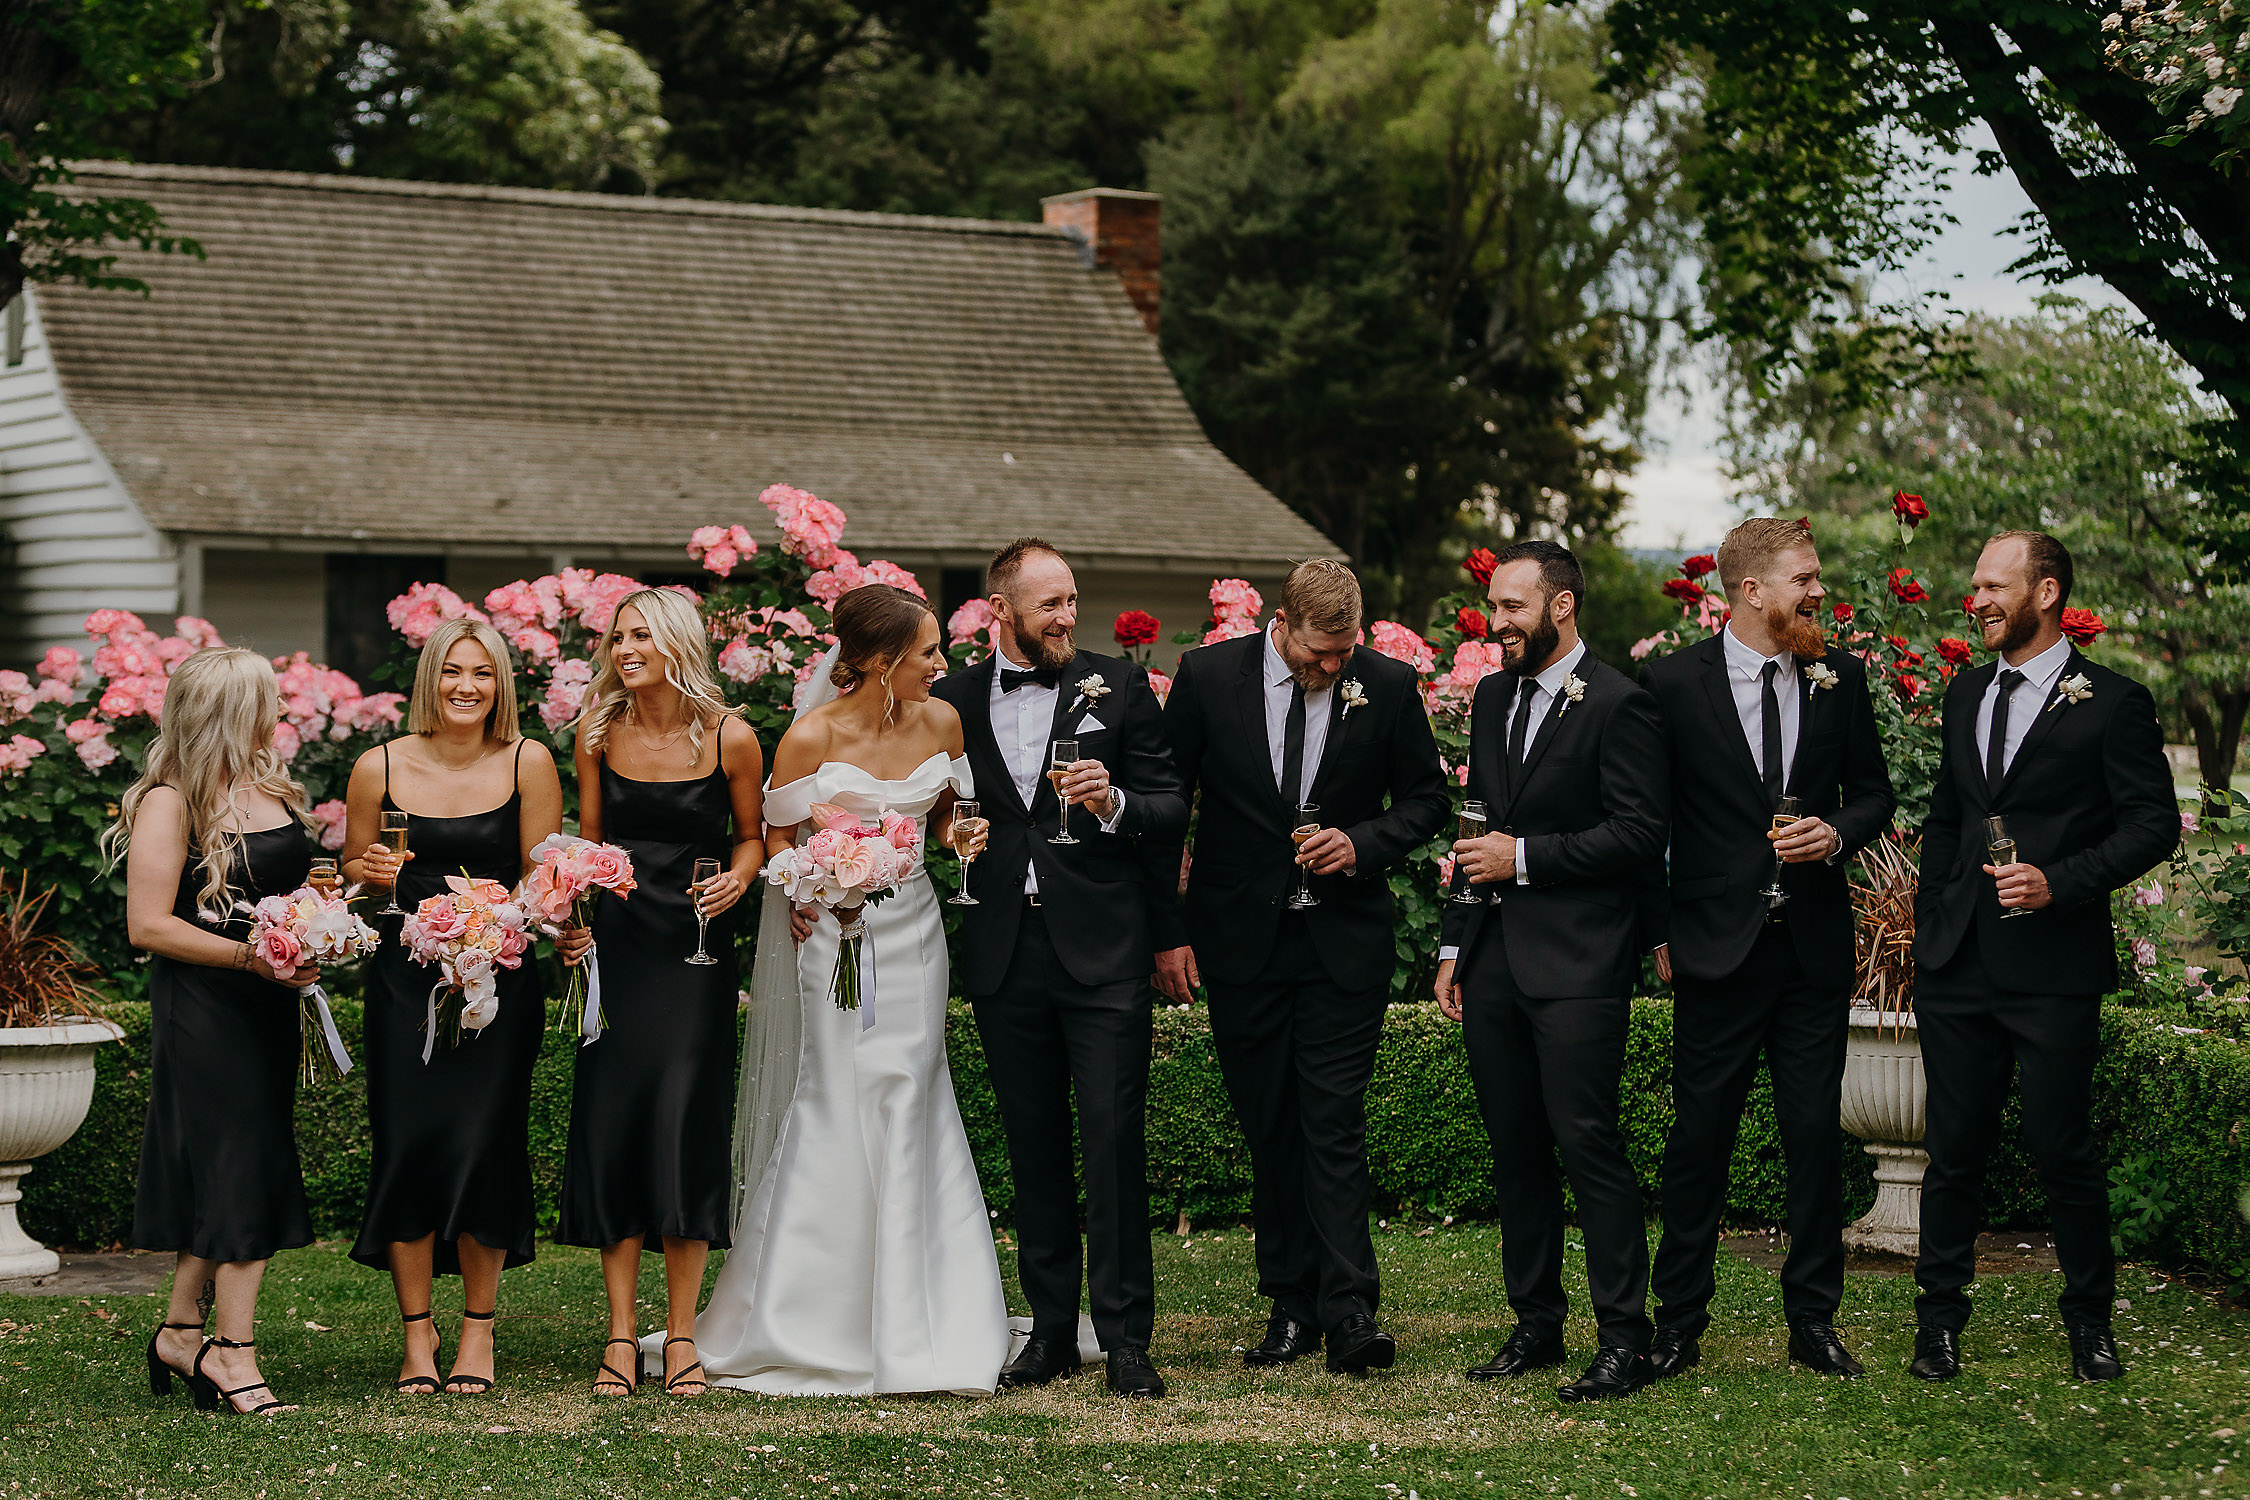 wedding bridal party riccarton house wedding photographer christchurch